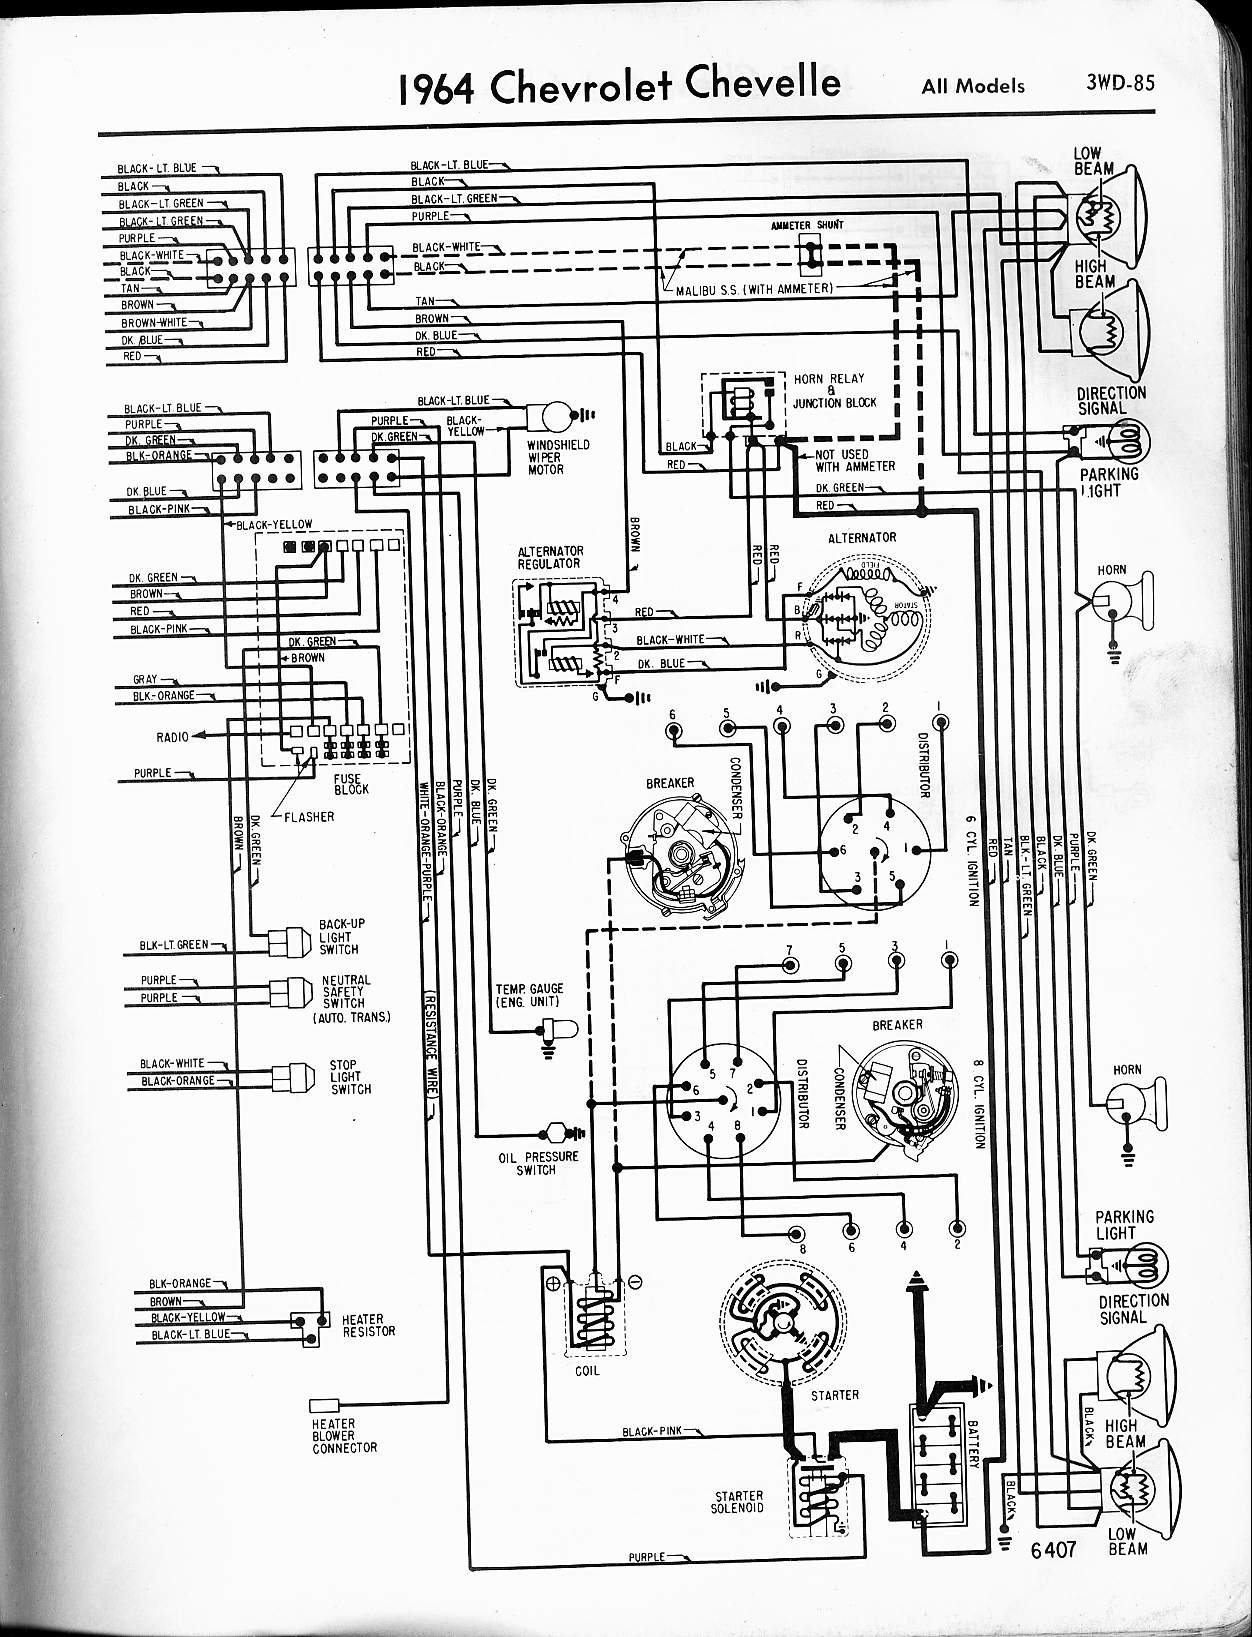 Ignition Coil Wiring Diagram 65 Chevelle Opinions About Wiring Tail Light  Wiring Diagram 1968 Camaro Tail Light Wiring Diagram 1964